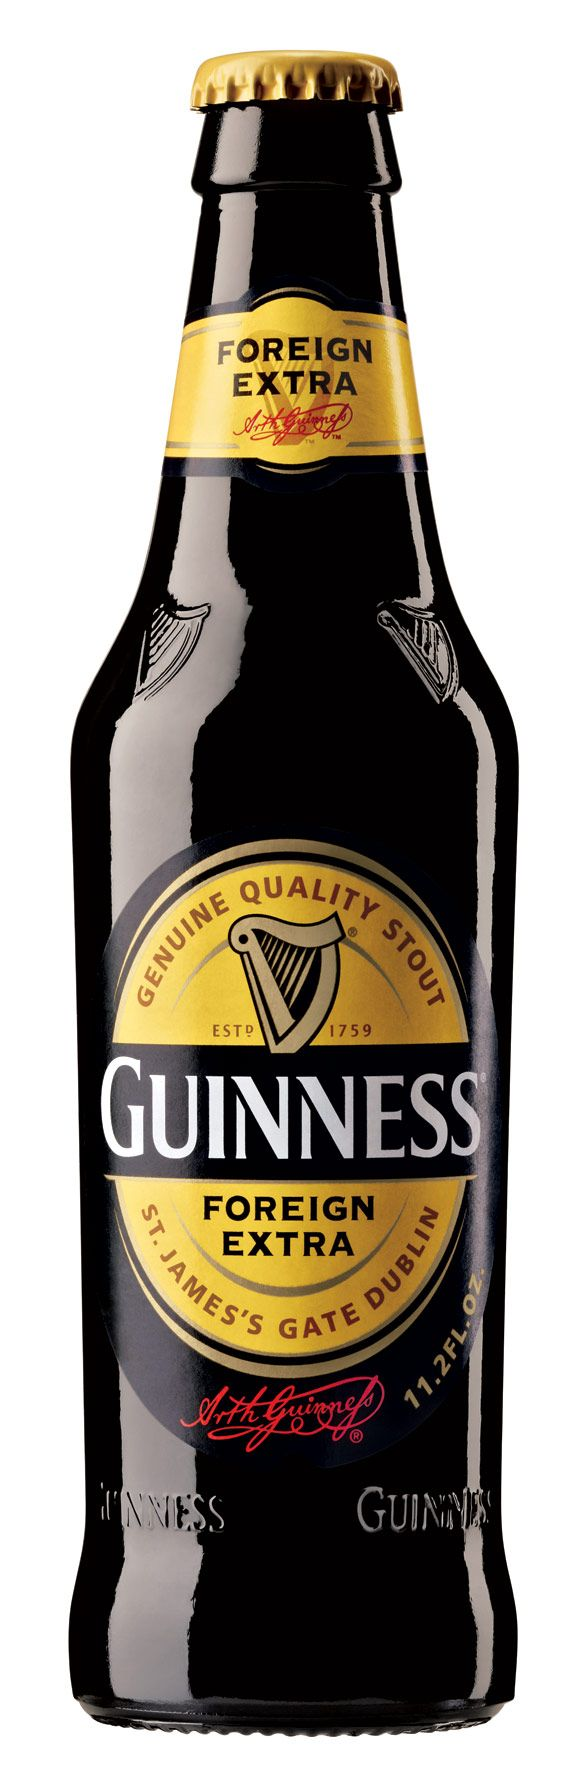 Guinness-Foreign-Extra-Stout.jpg 587×1,789 pixels